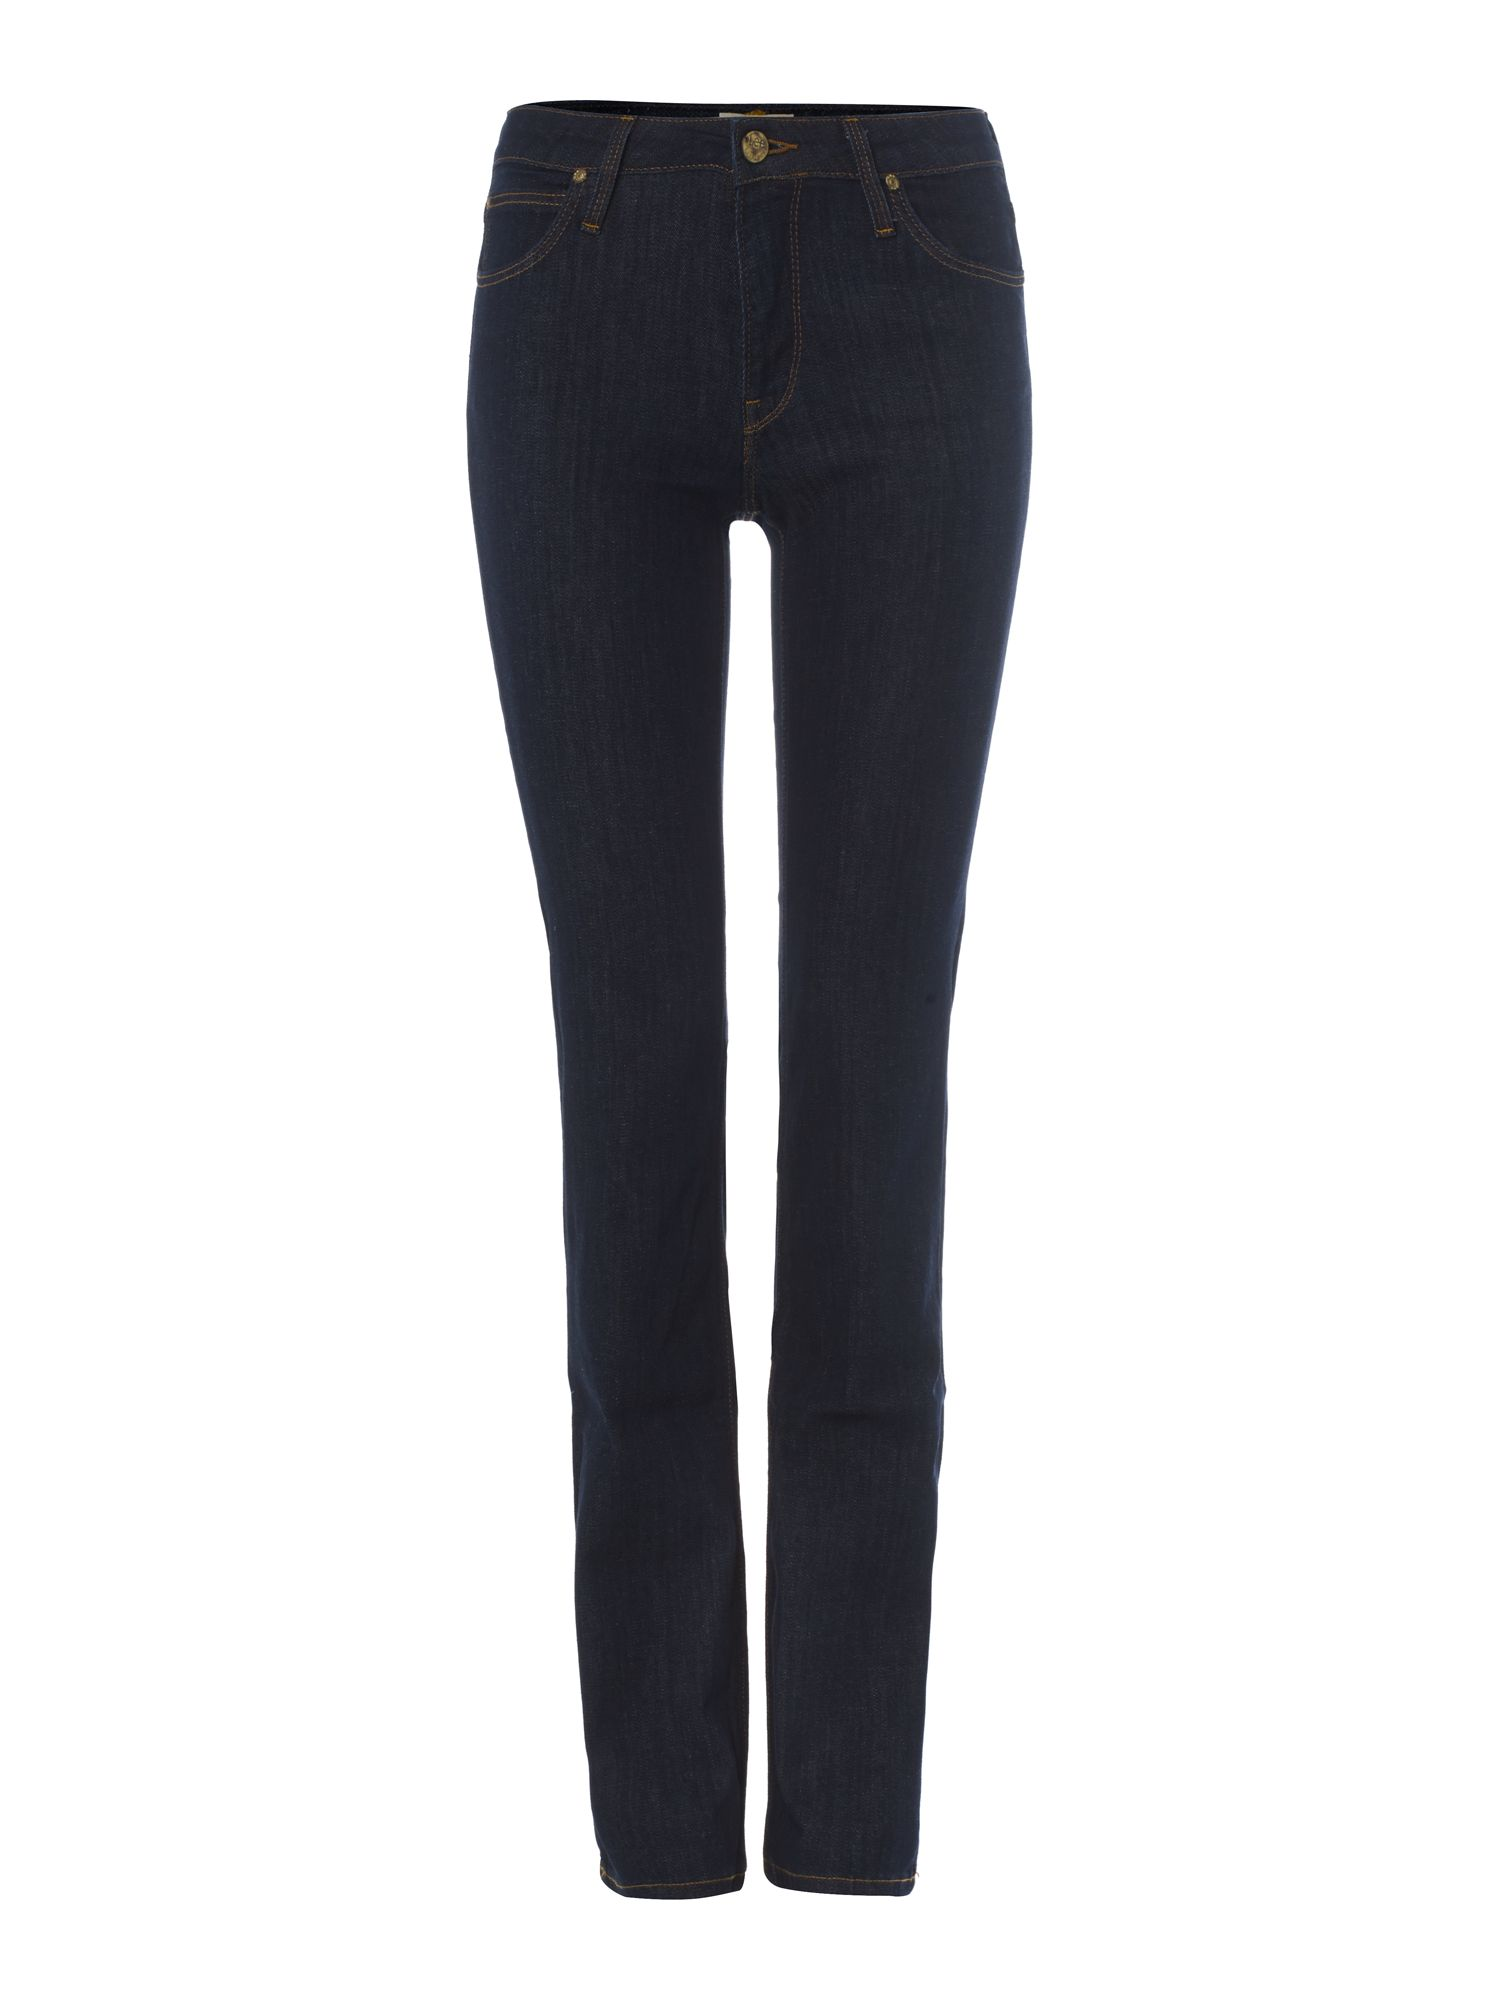 Marion straight leg jeans in Solid Blue